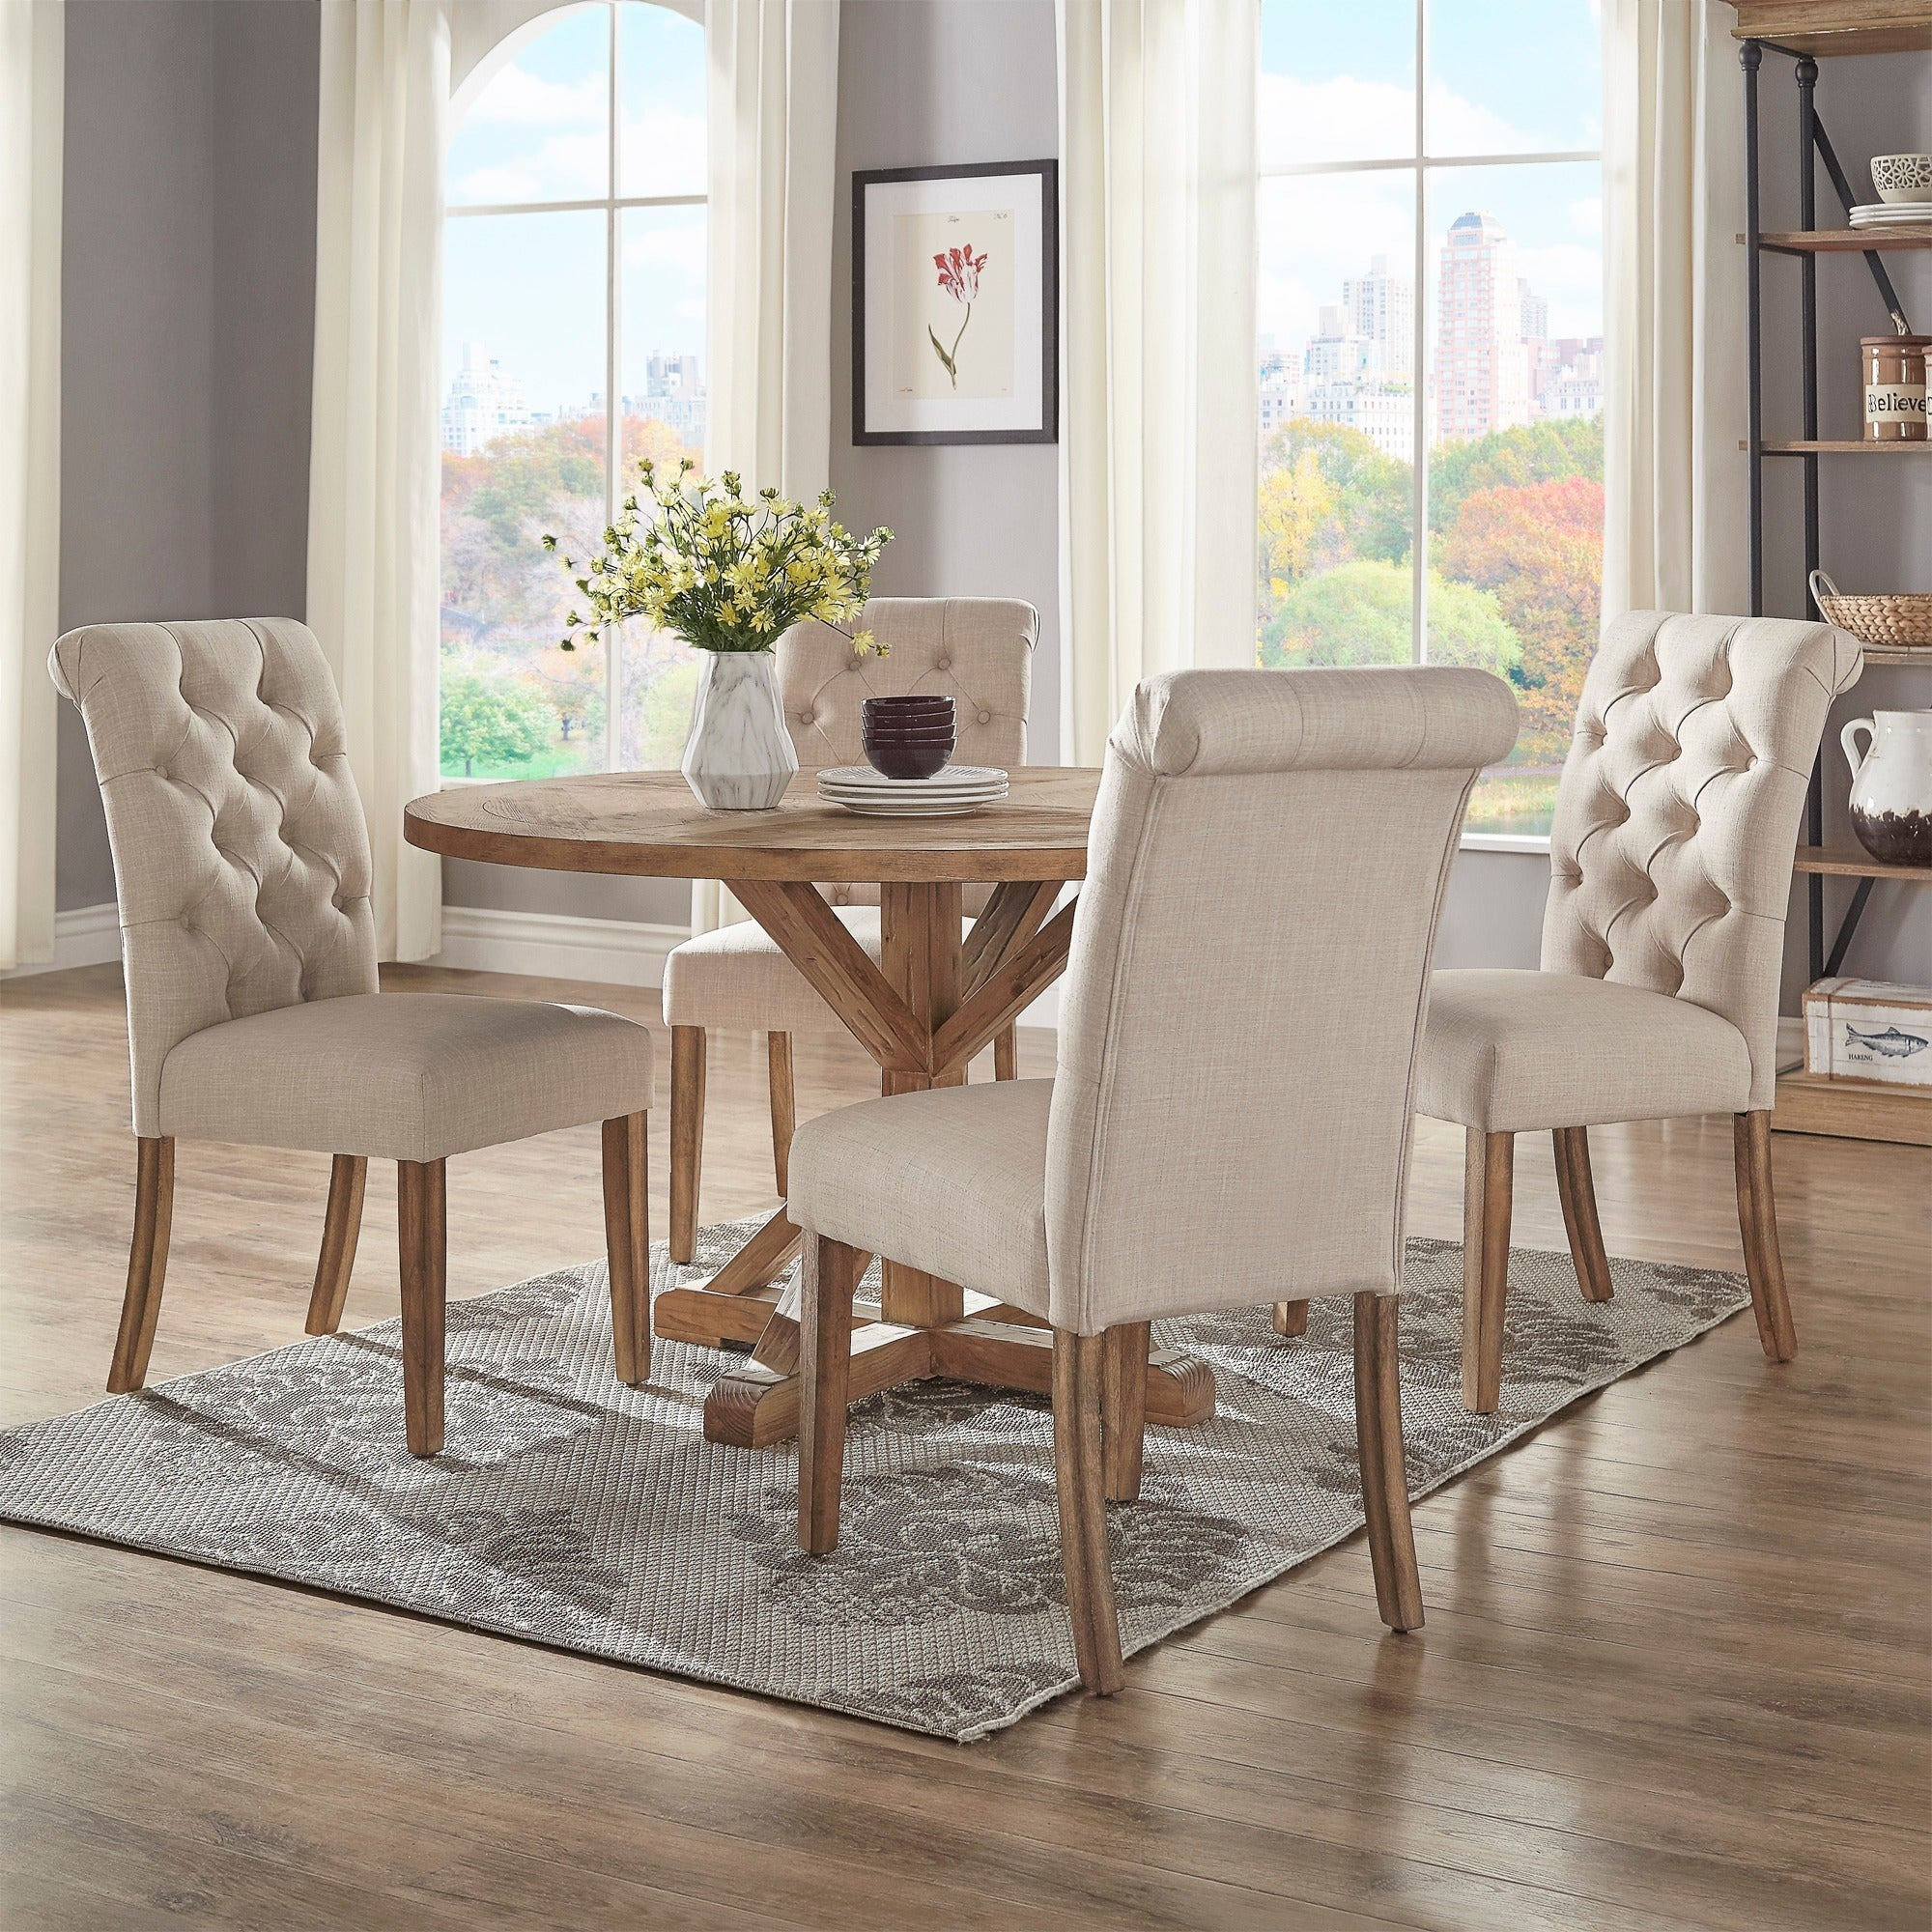 Benchwright Rustic X Base 48 Inch Round Dining Table Setinspire Q Artisan Intended For Most Popular Gray Wash Benchwright Extending Dining Tables (View 19 of 25)